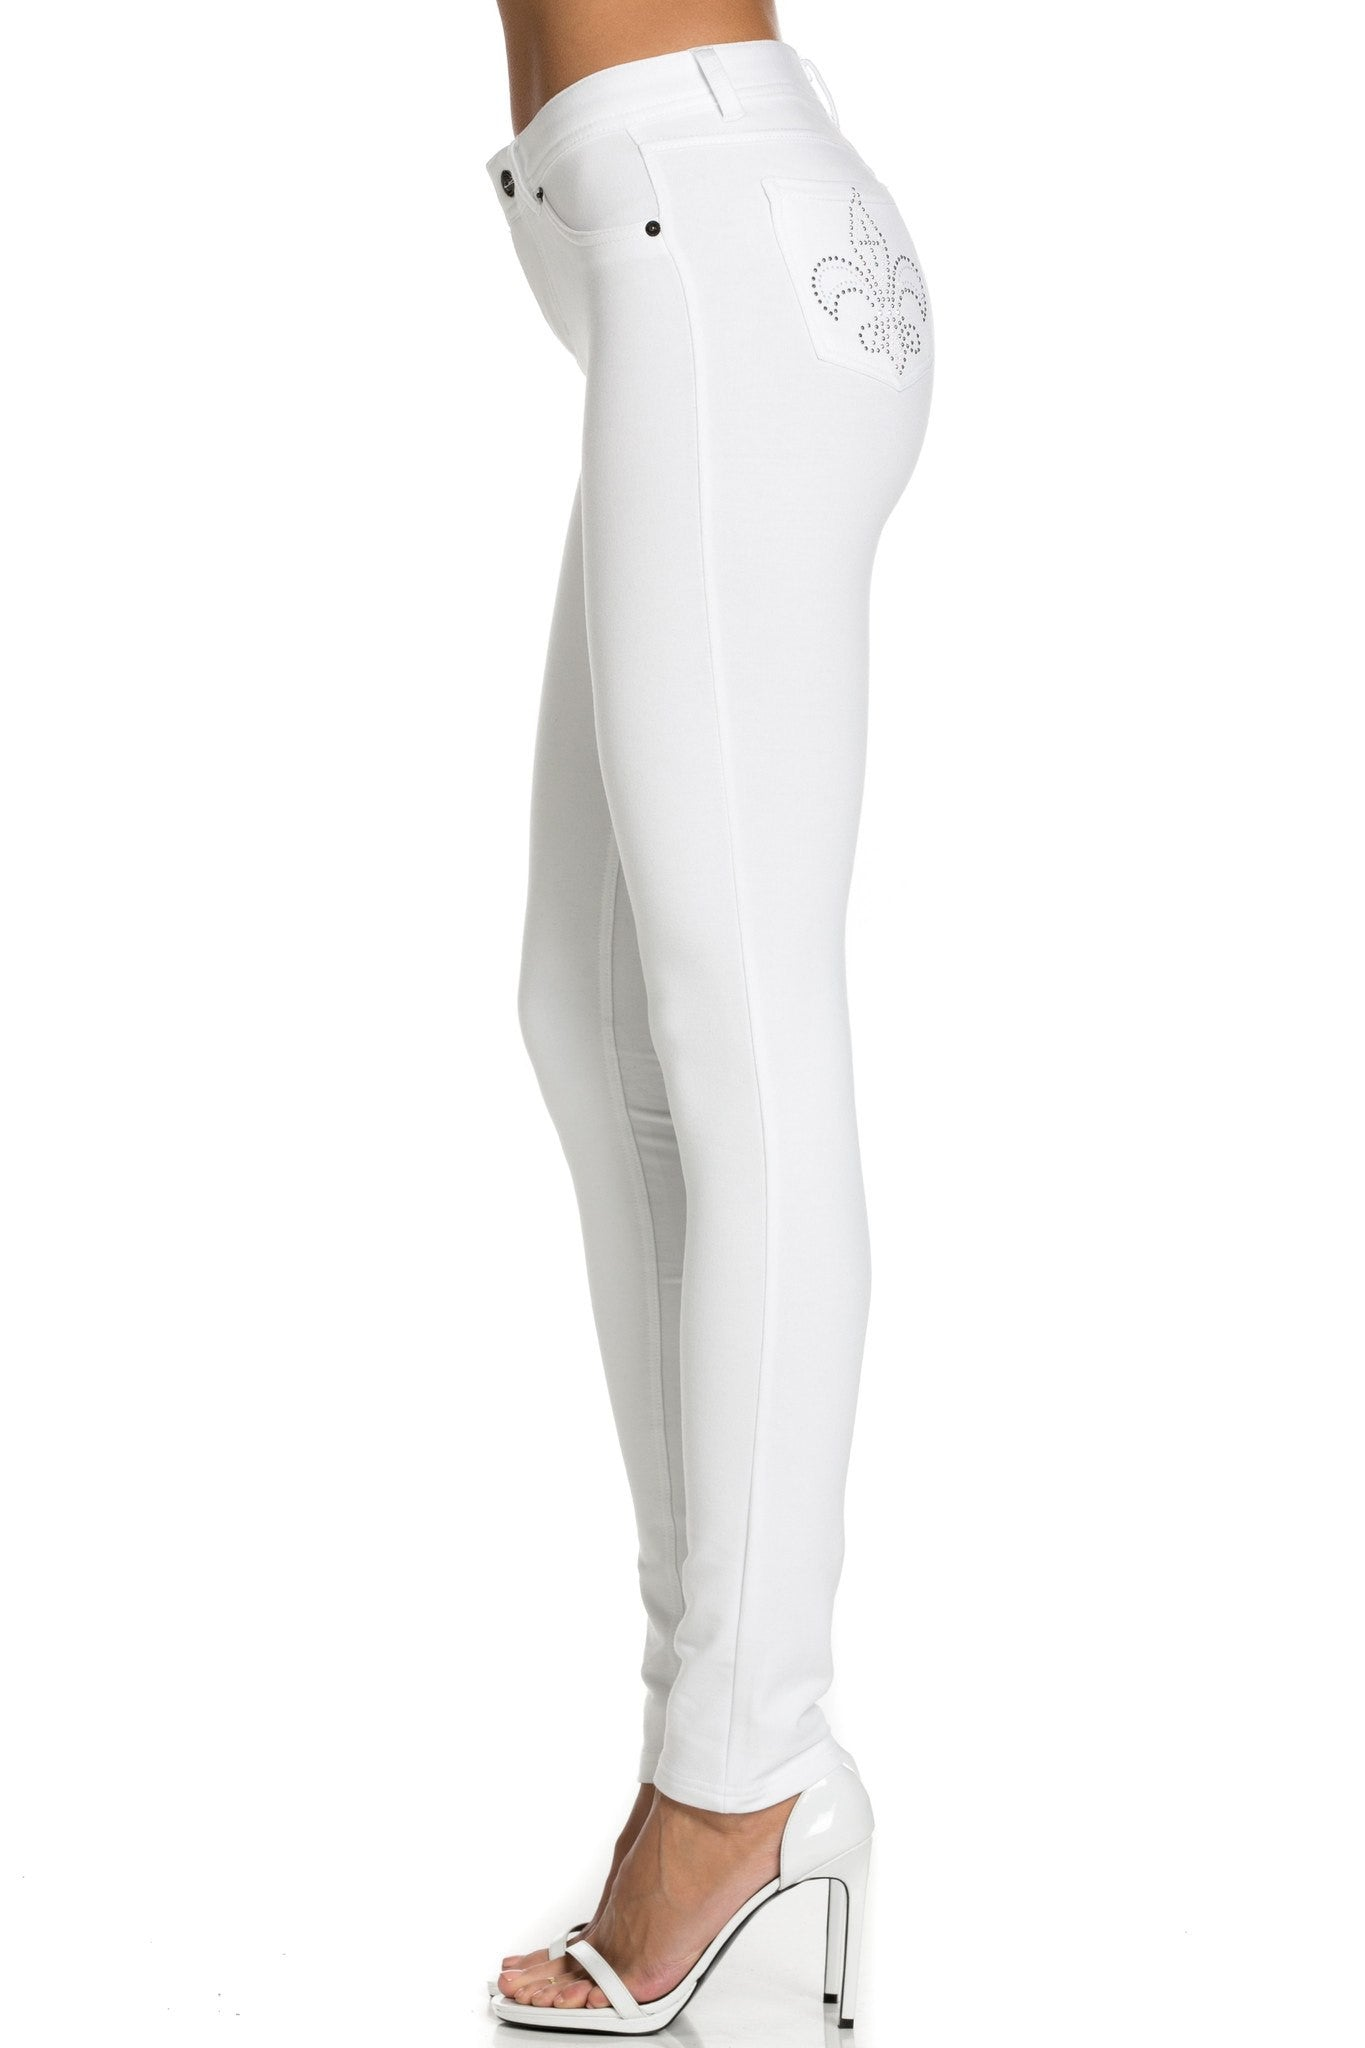 Embellished Stretch Skinny Knit Jegging Pants (White Fleur-de-Lis) - Poplooks